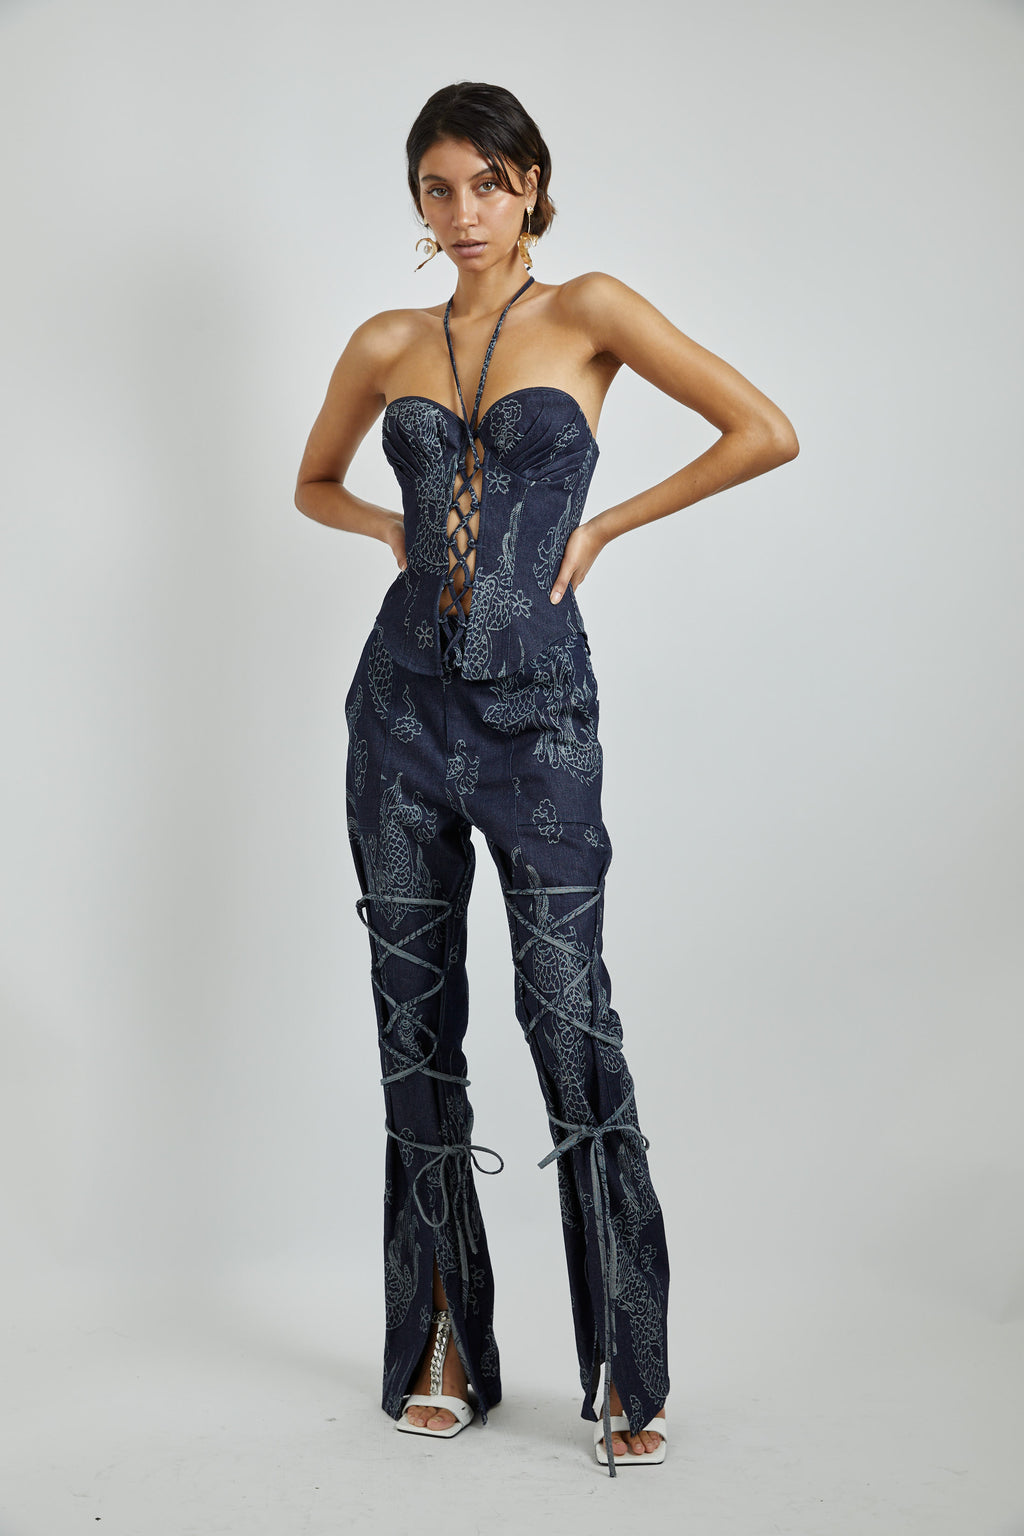 Denim Dragon Lace up Bustier-PREORDER -DELIVERY ON Nov 28